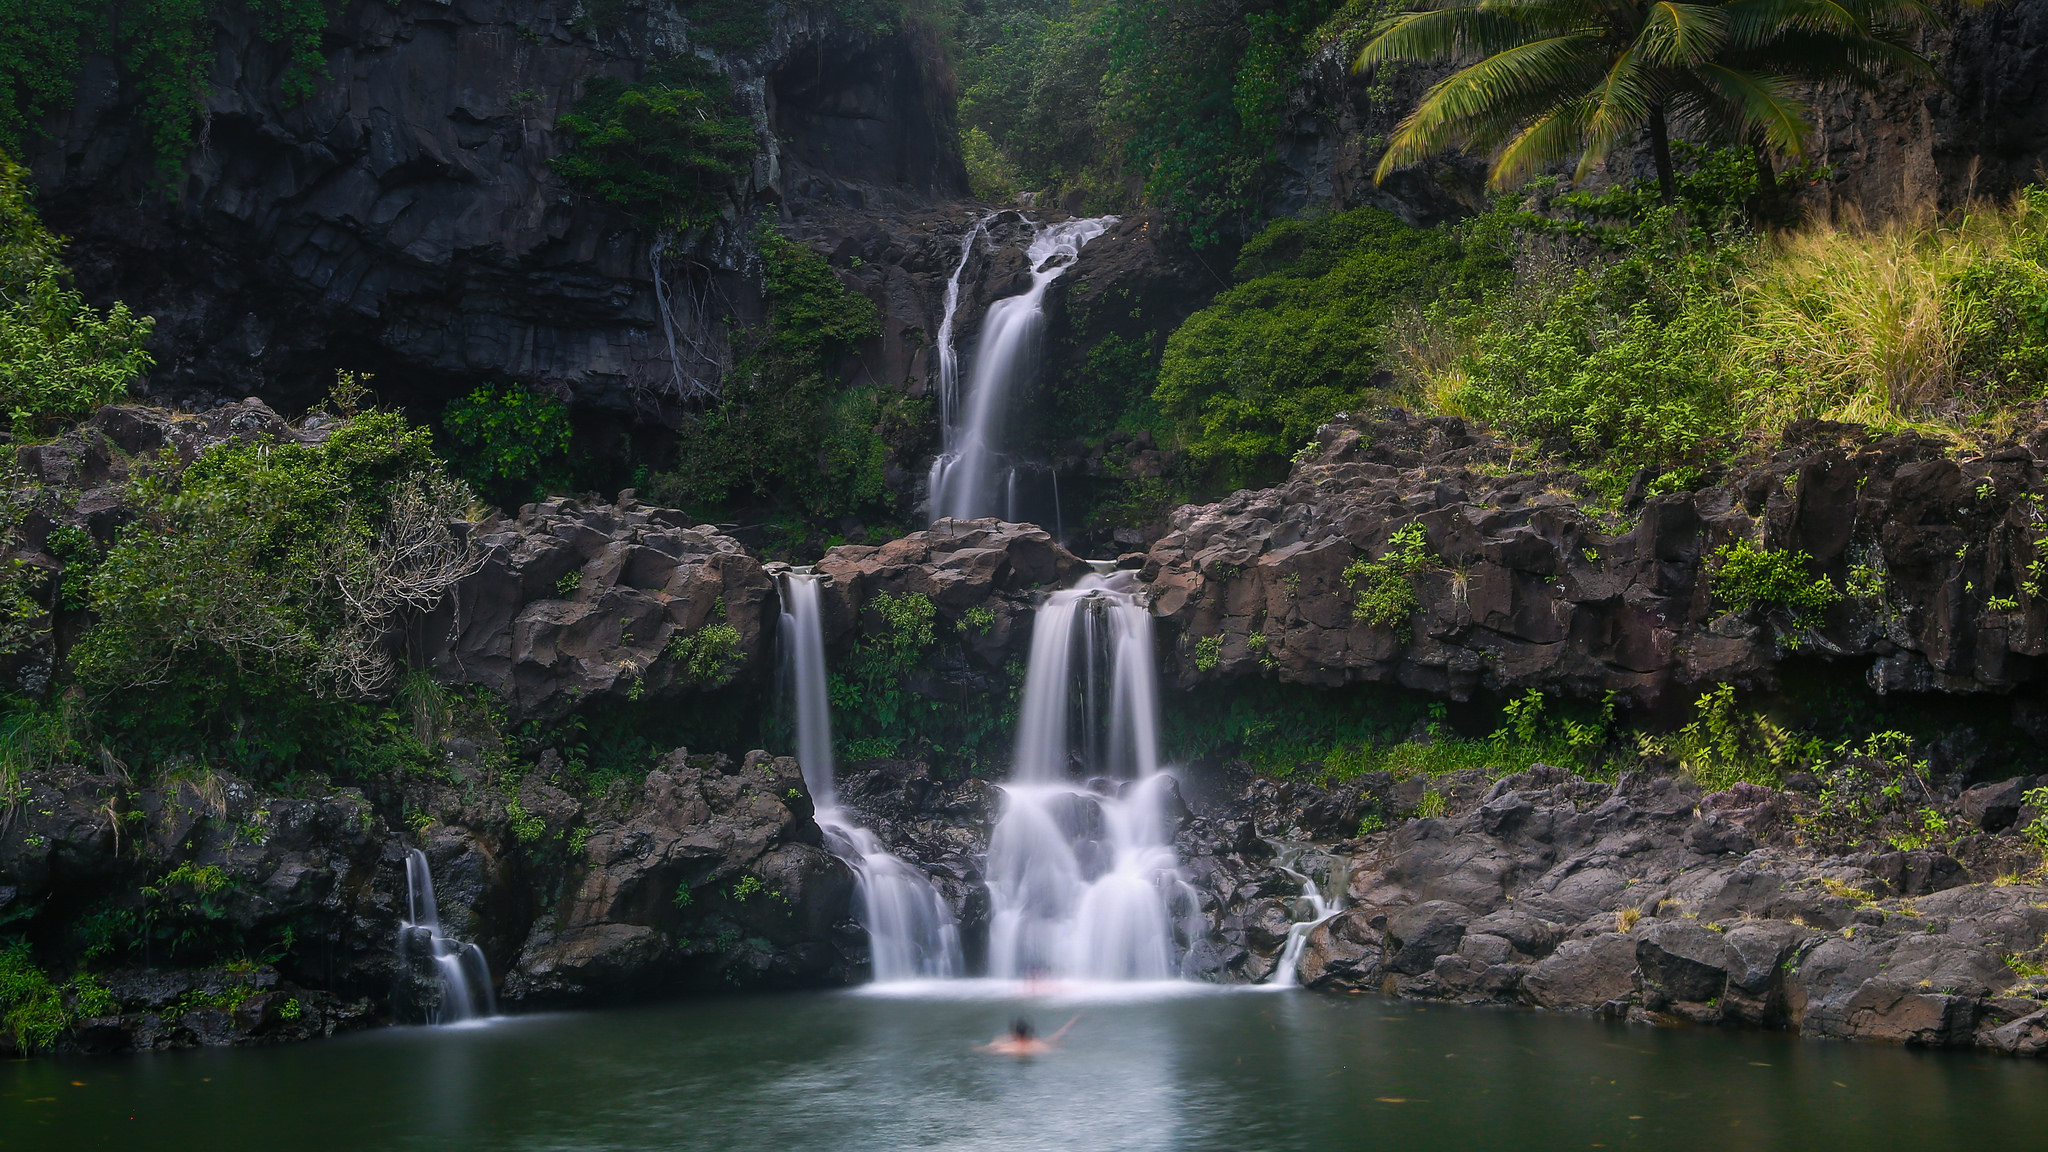 Seven Sacred Pools at Ohe'o | Photo by Joe Parks